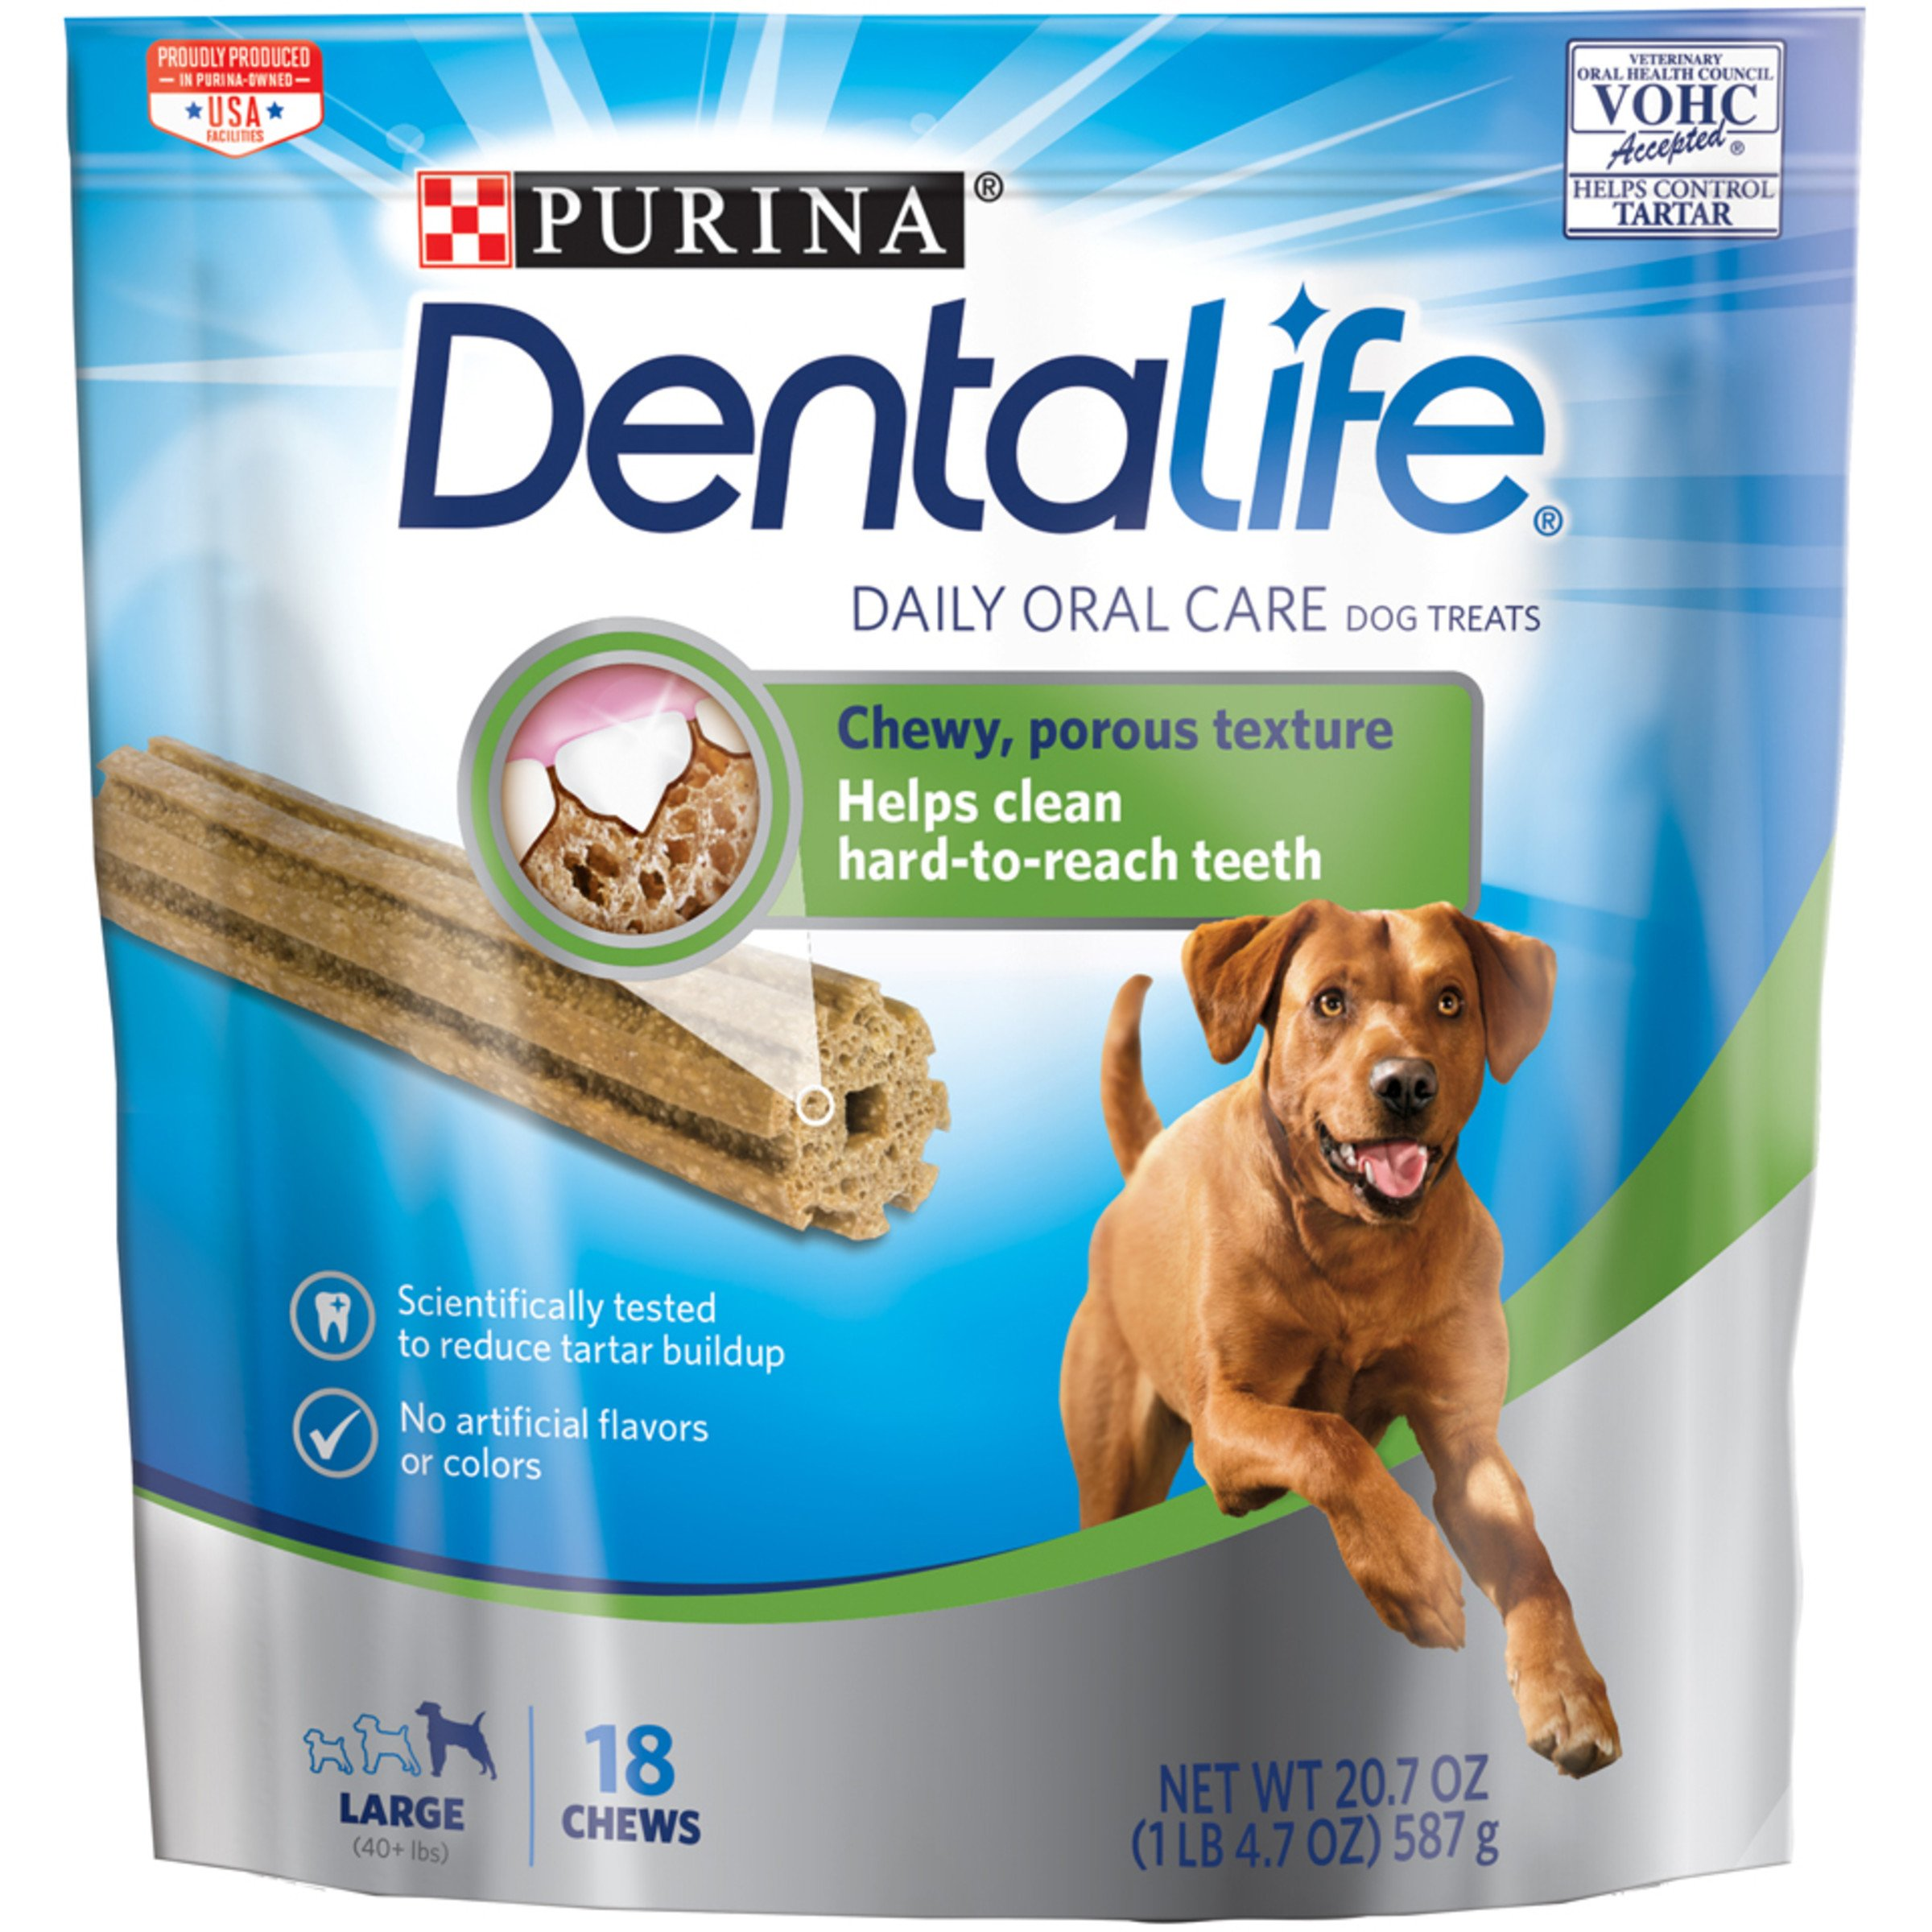 Purina DentaLife Daily Oral Care Large Dog Treats, 2 Pack